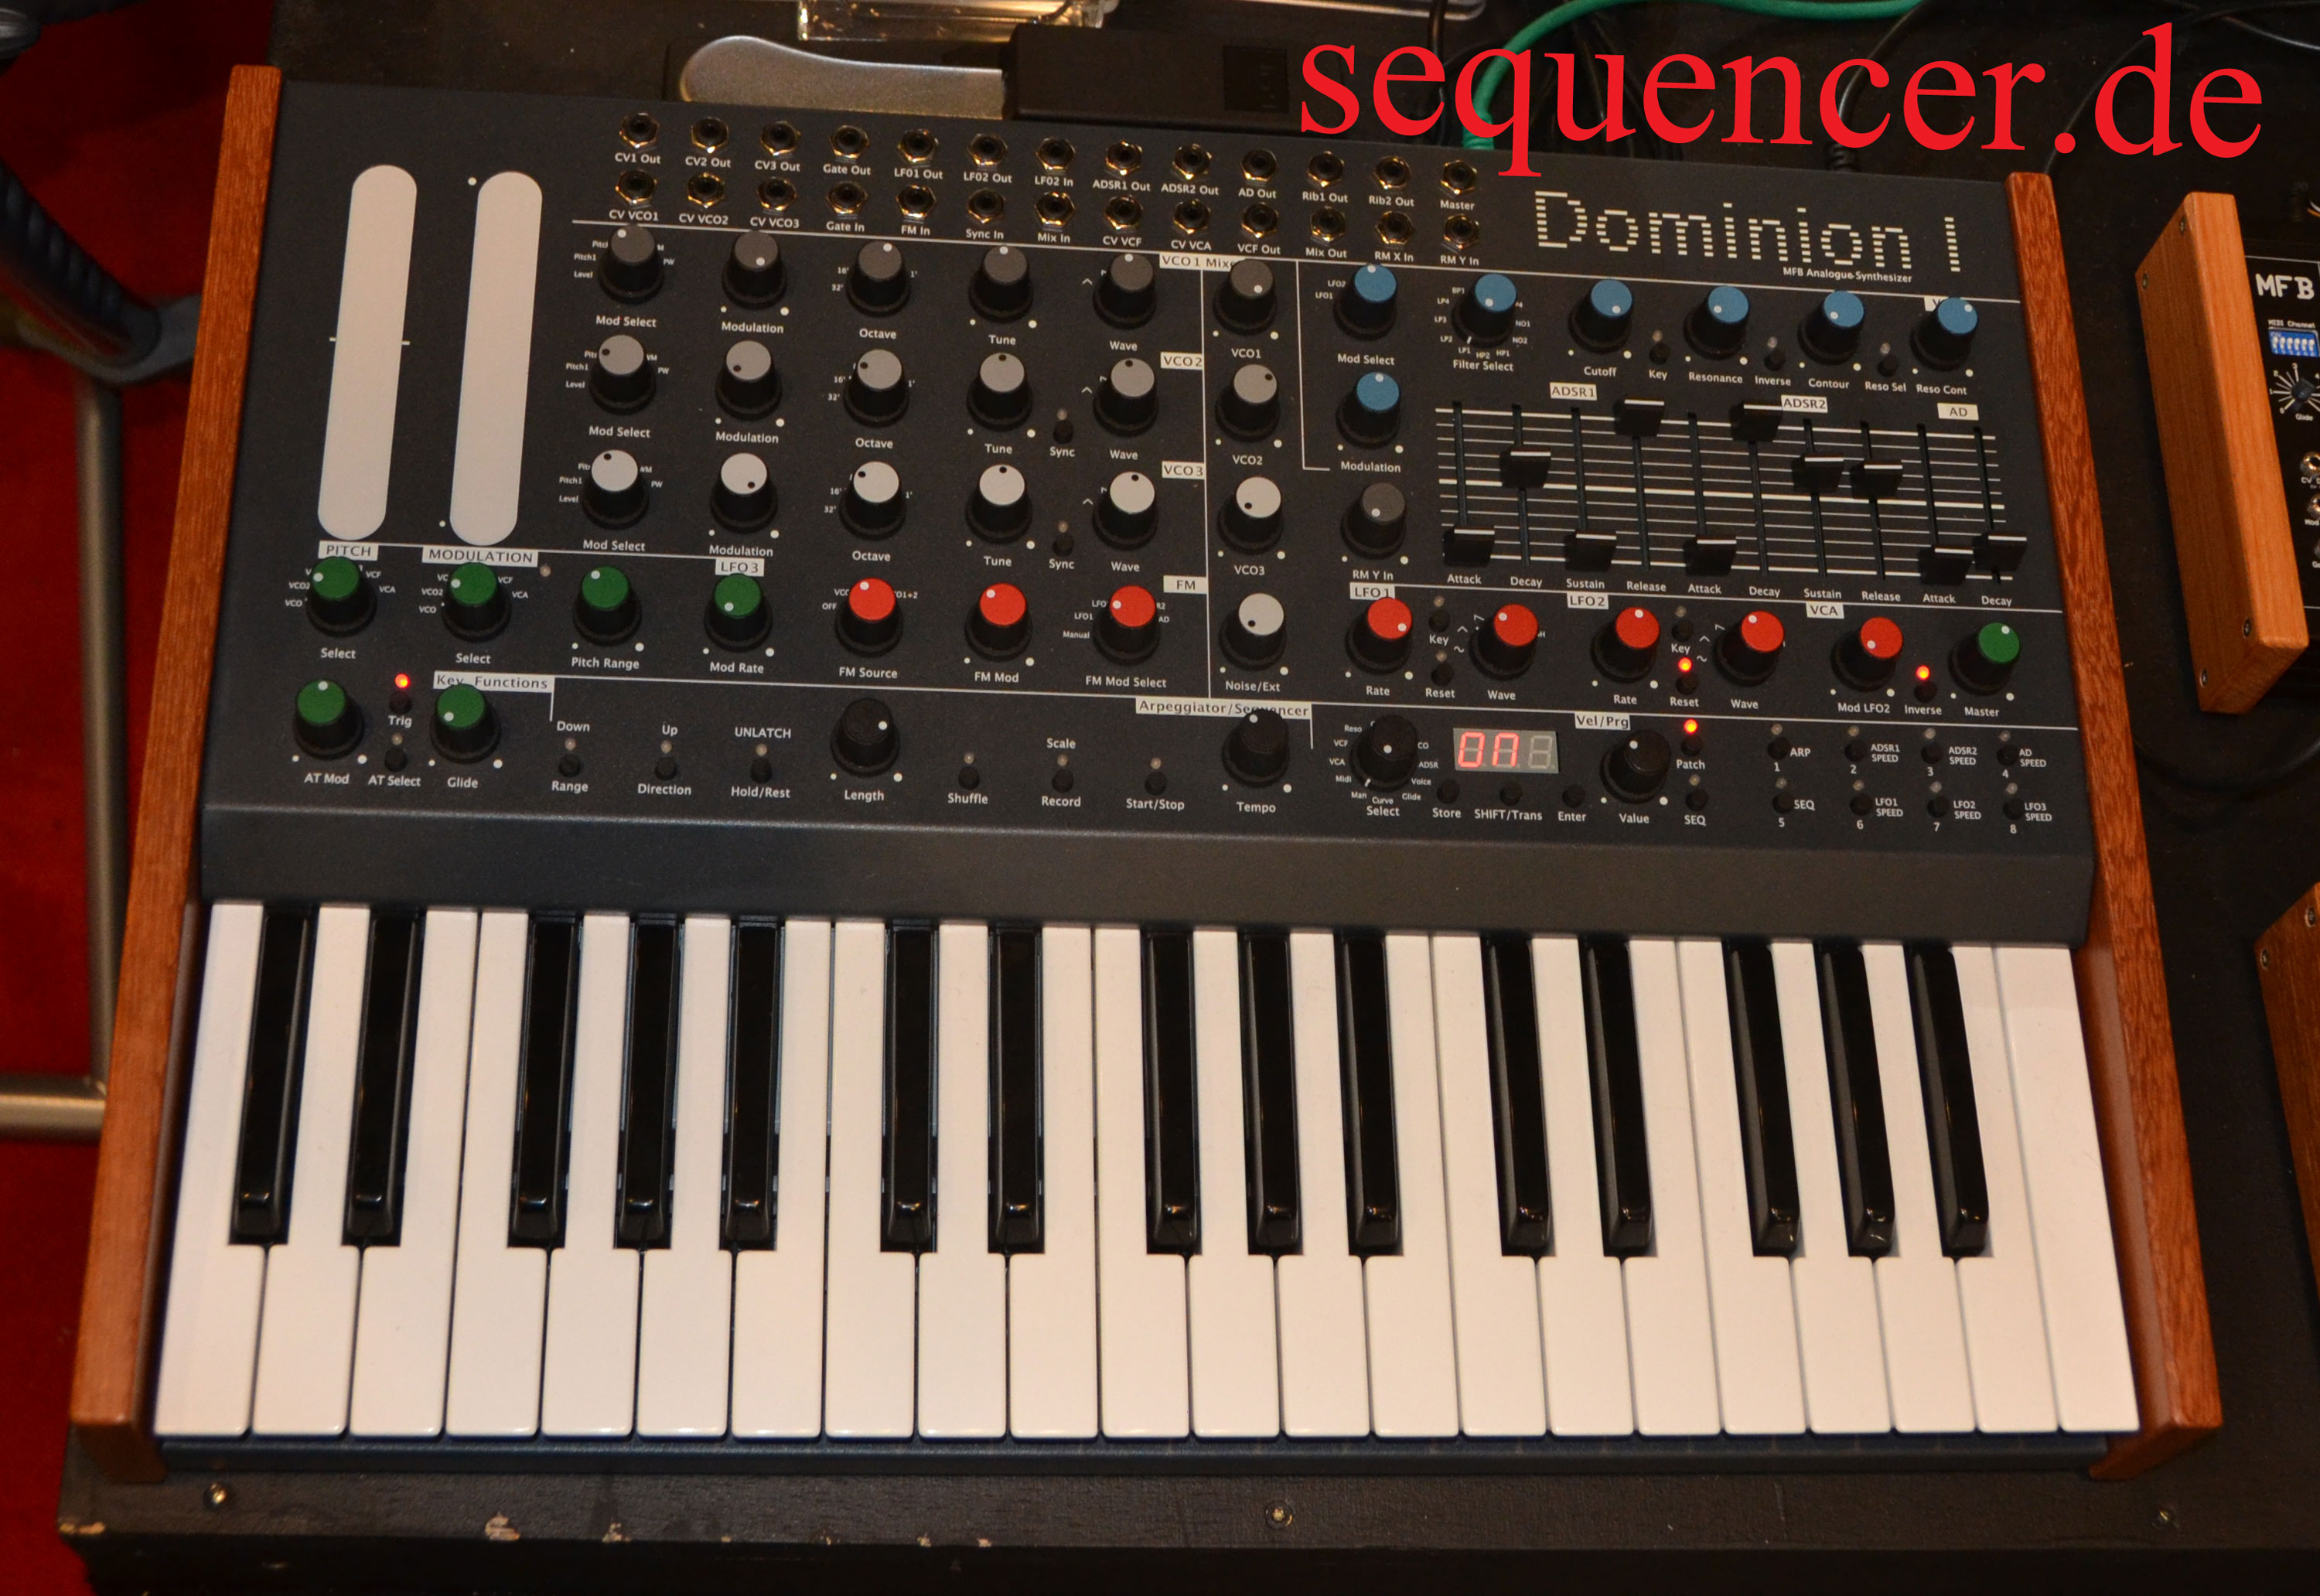 MFB Dominion 1 synthesizer